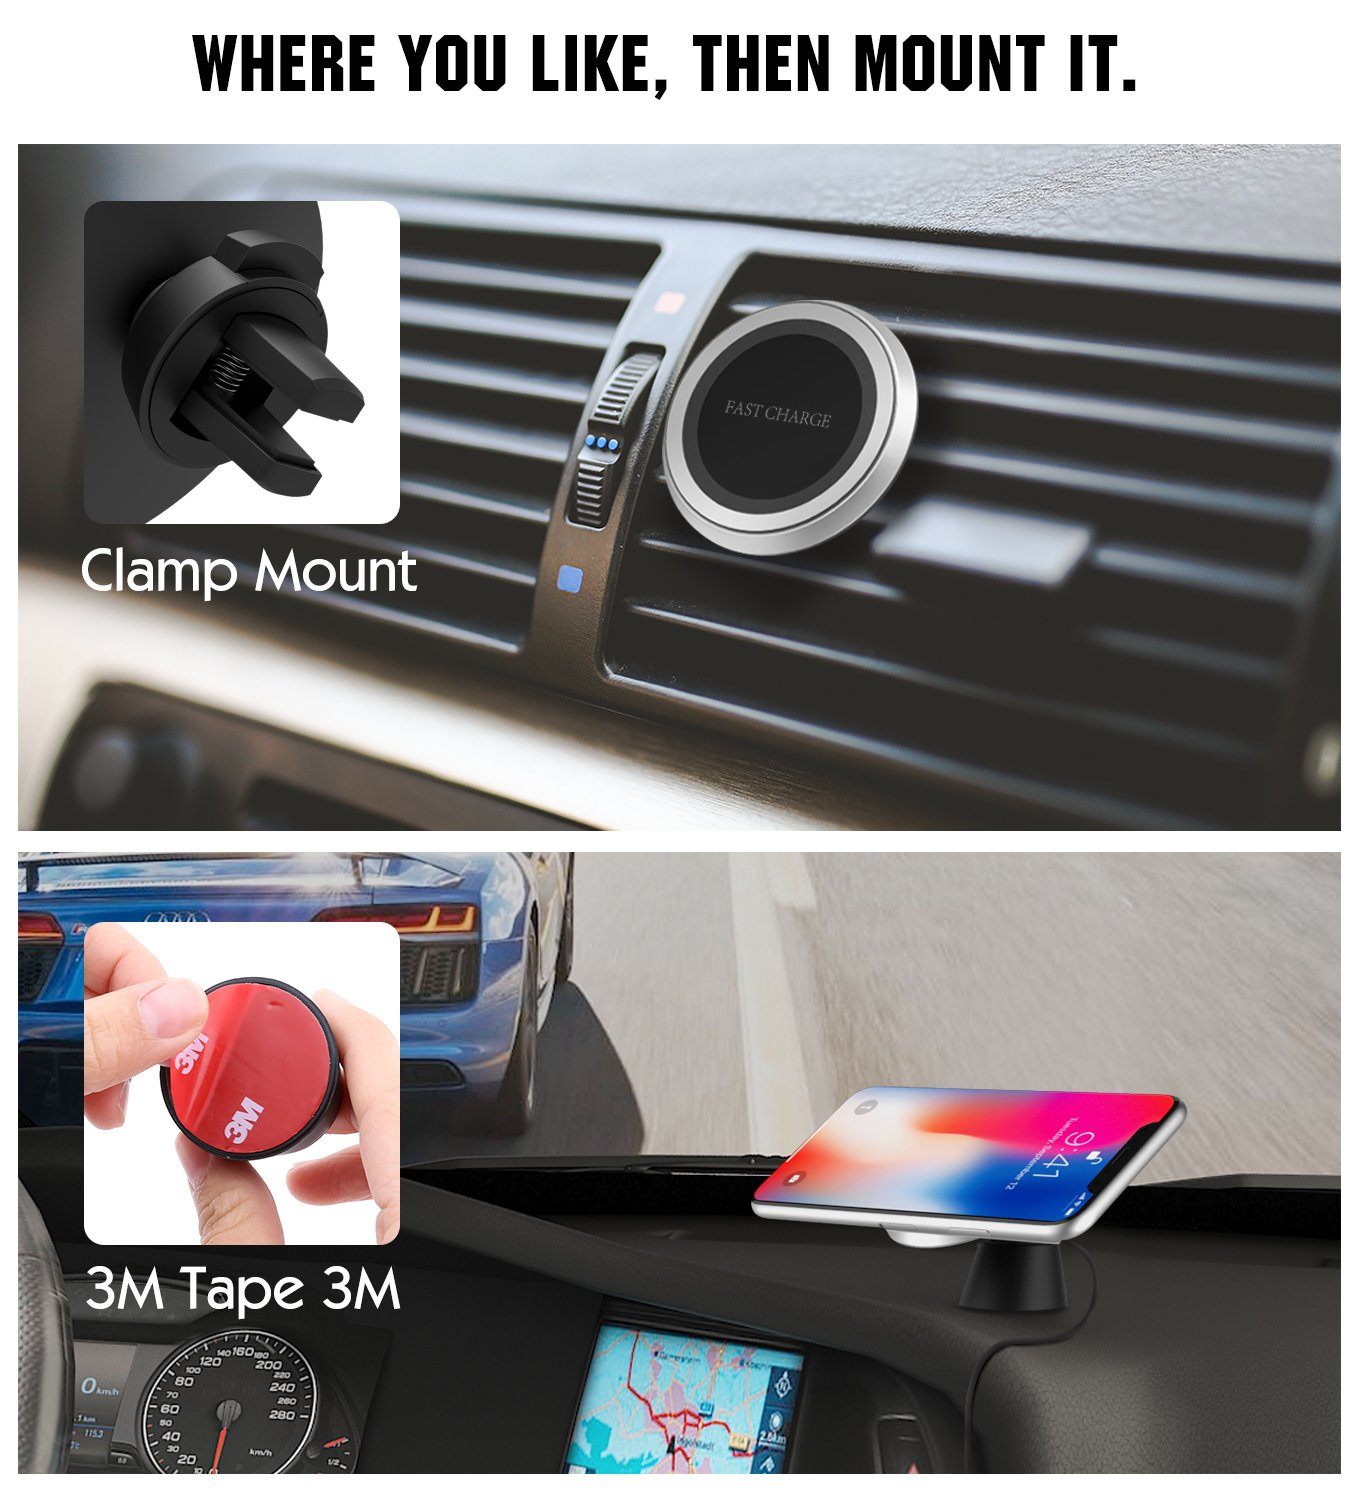 360 Degree Rotation Air Vent Holder and Dash Board Charging Mount Fit iPhone X// 8//8 Plus Samsung Note 8// S8// S8 Plus and Qi-Enabled Devices MoKo Magnetic Fast Qi Wireless Car Charger Stand Black 4351674083